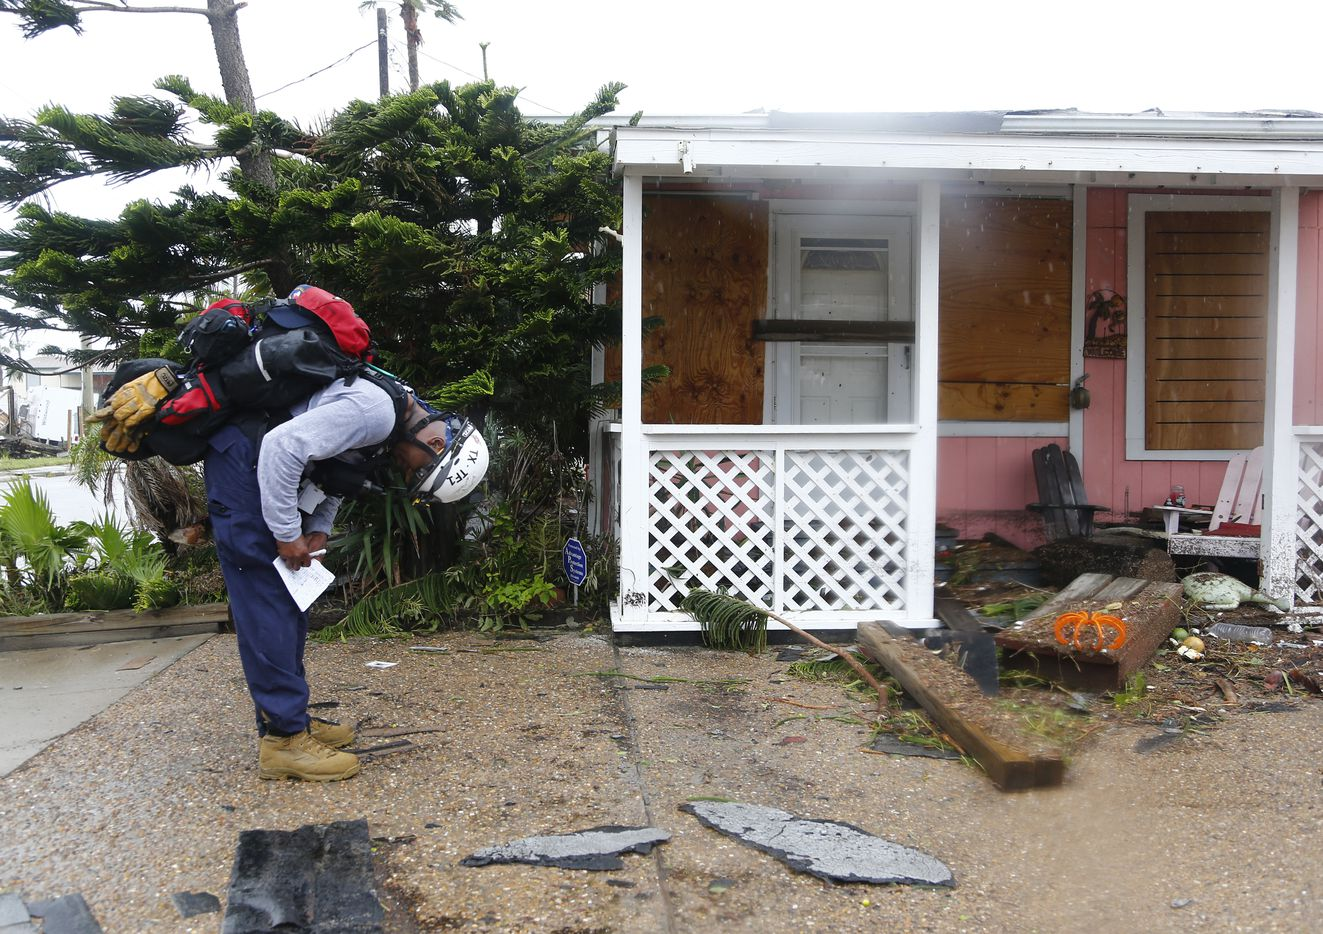 Texas Task Force Search and Rescue Team 1 member Terrance Majors from Fort Worth fills out a tag on a searched house to signal its status after Hurricane Harvey hit Port Aransas, Texas on Aug. 26, 2017.